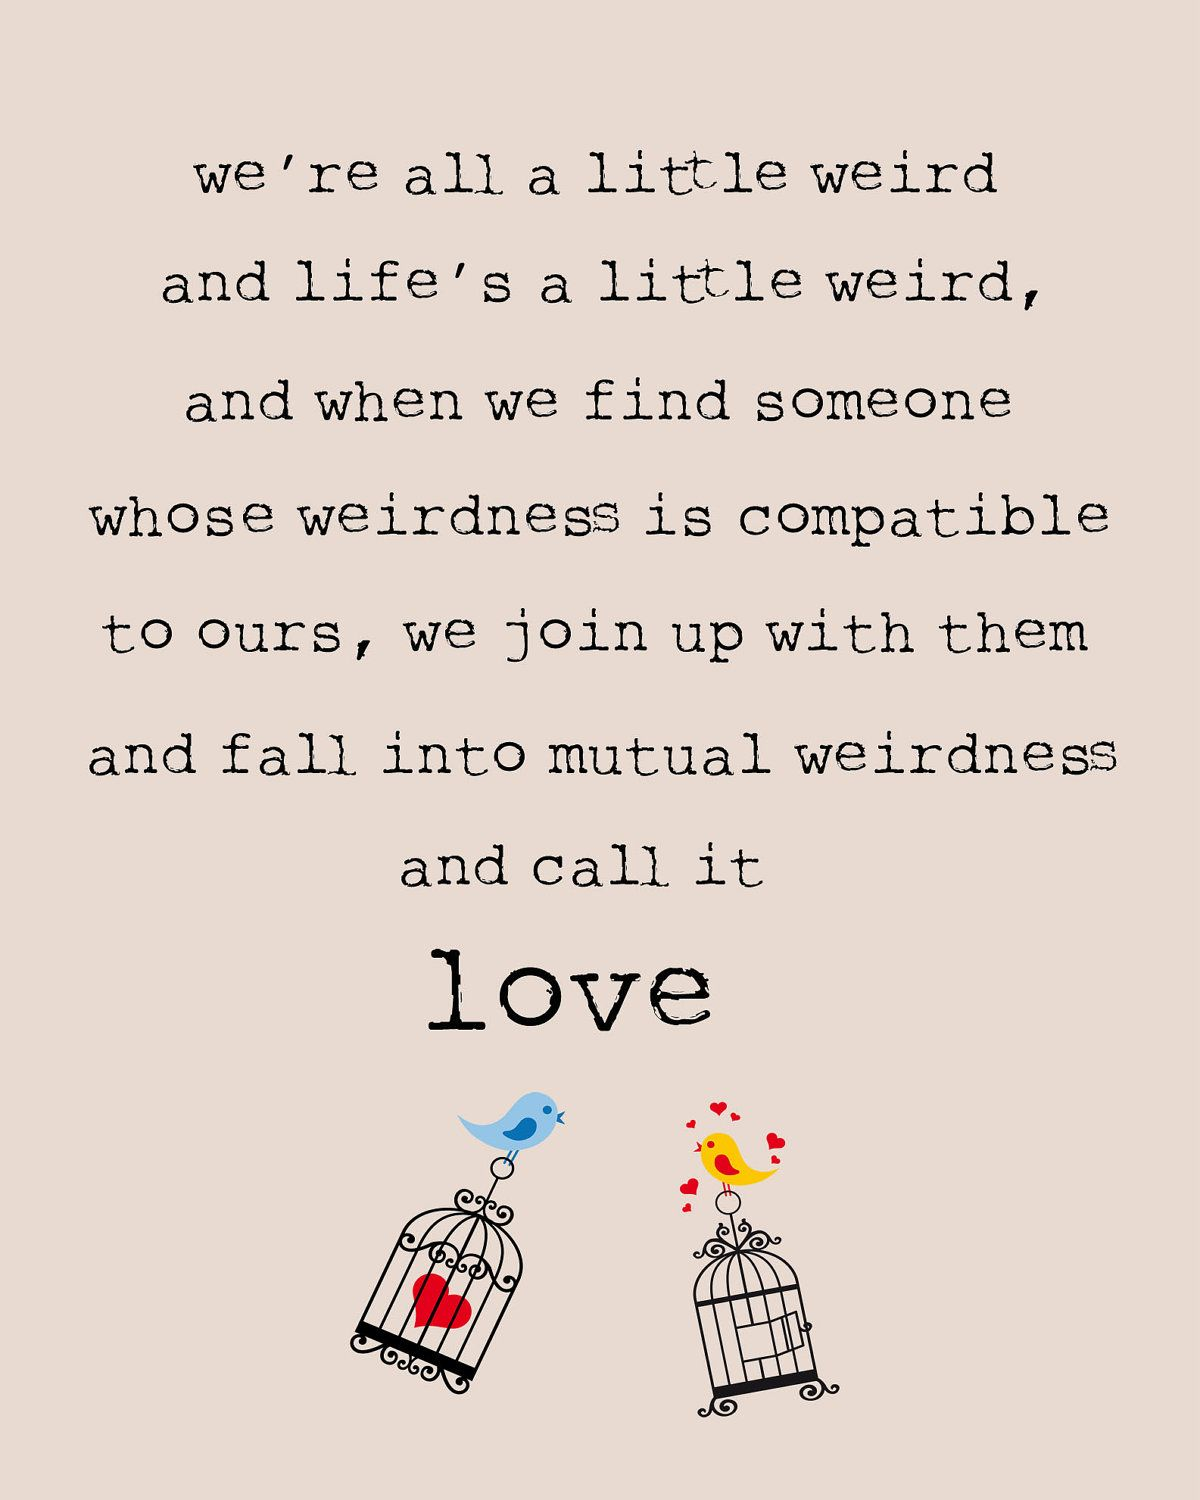 Love Quote Dr Seuss Pinmaureen Mcfee On I Believe In A Thing Called Love Pinterest